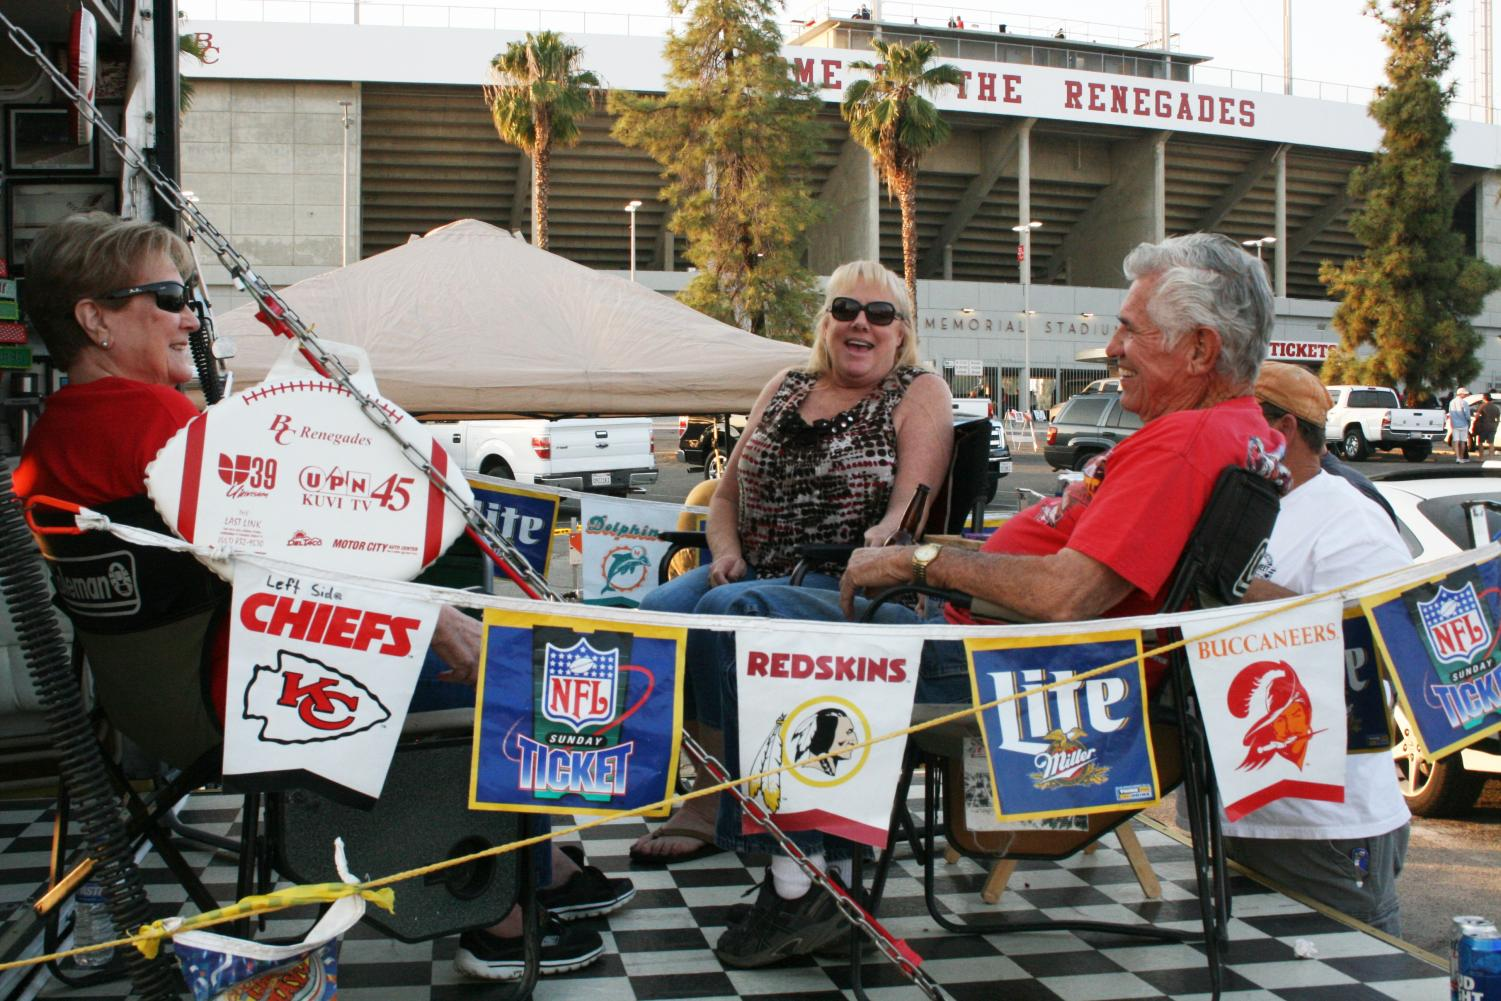 From the left: Barbar Lopez, 79, Karen Tallman, 57, James Tallman, 55, and Buddy Lopez, 83 throw their own tailgate party at the homecoming game.